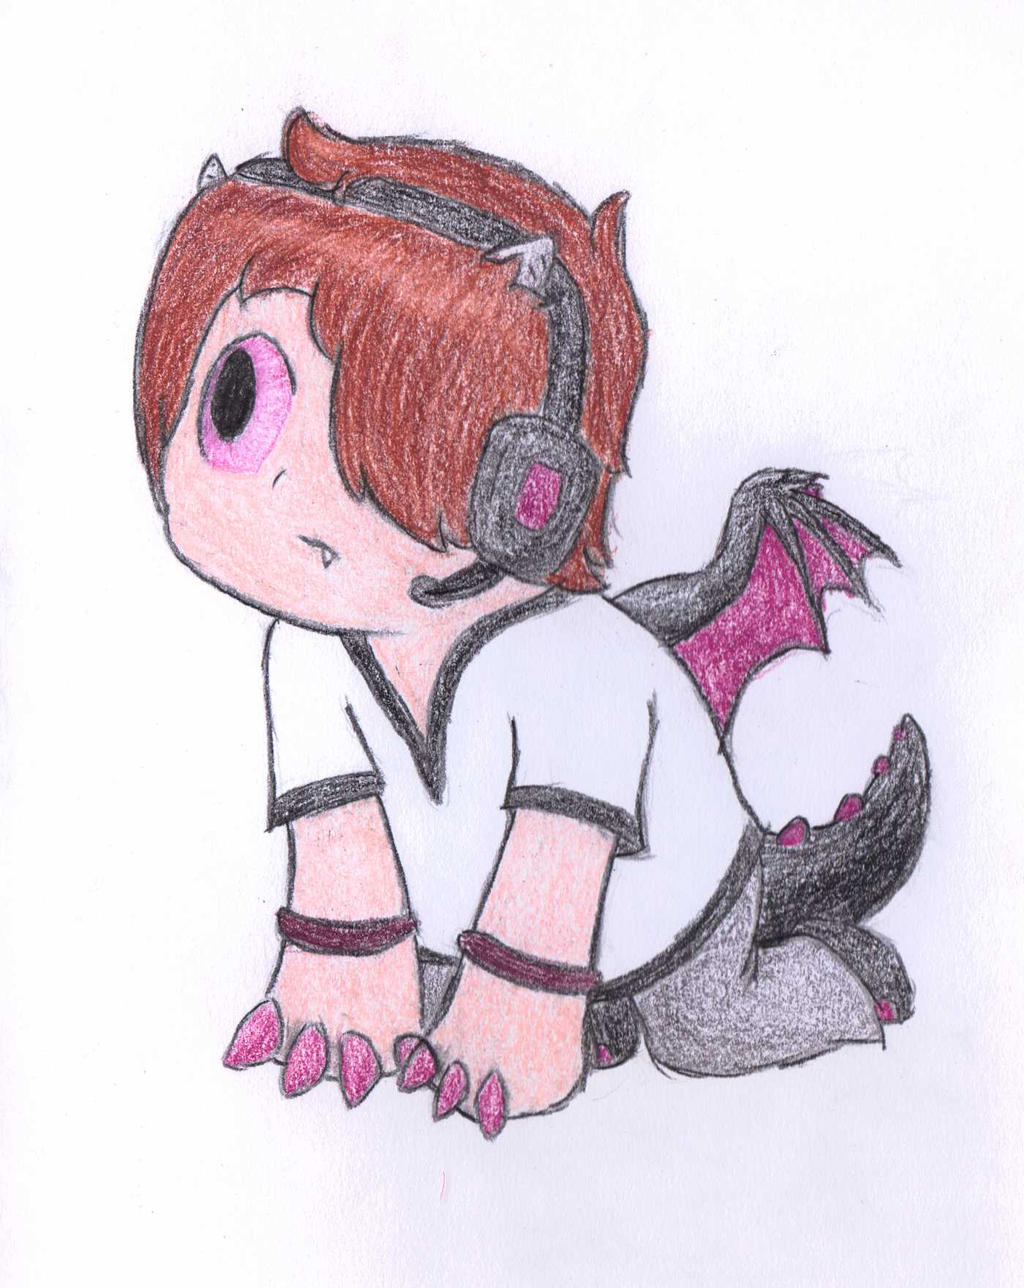 Chibi Enderlox by WildWithin on DeviantArt